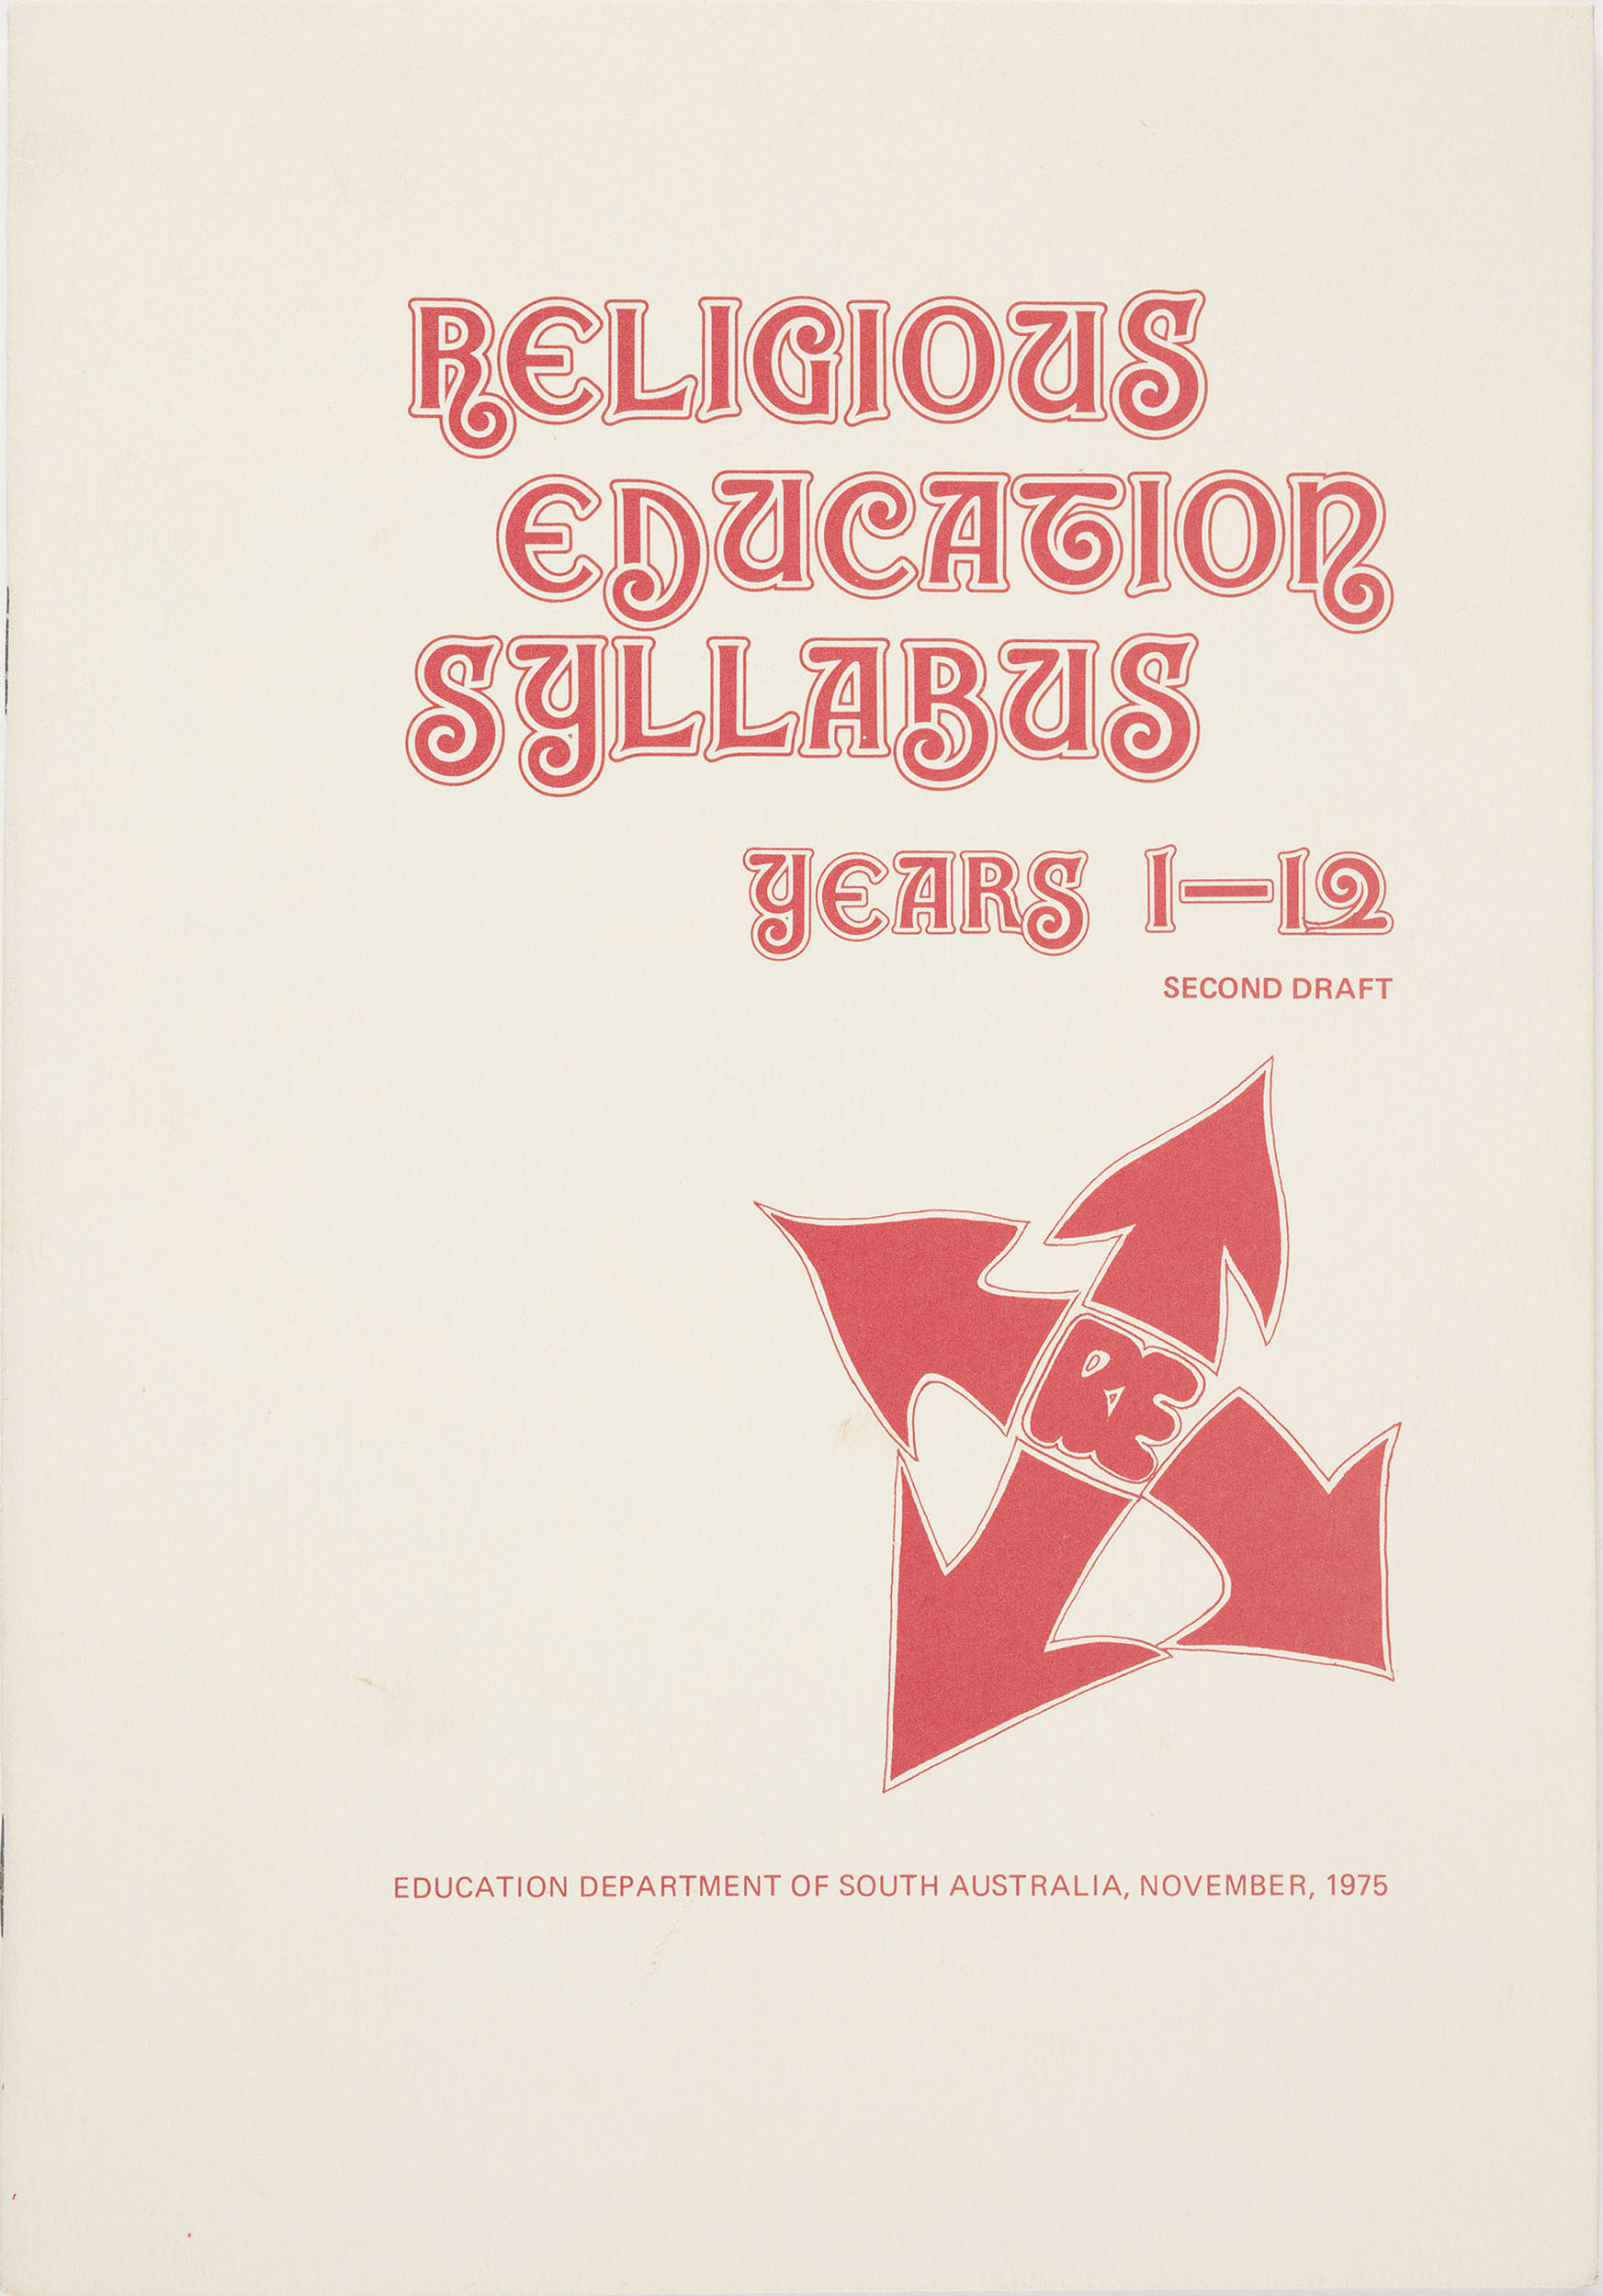 Religious education syllabus : years 1-12 / Education Department of South Australia.